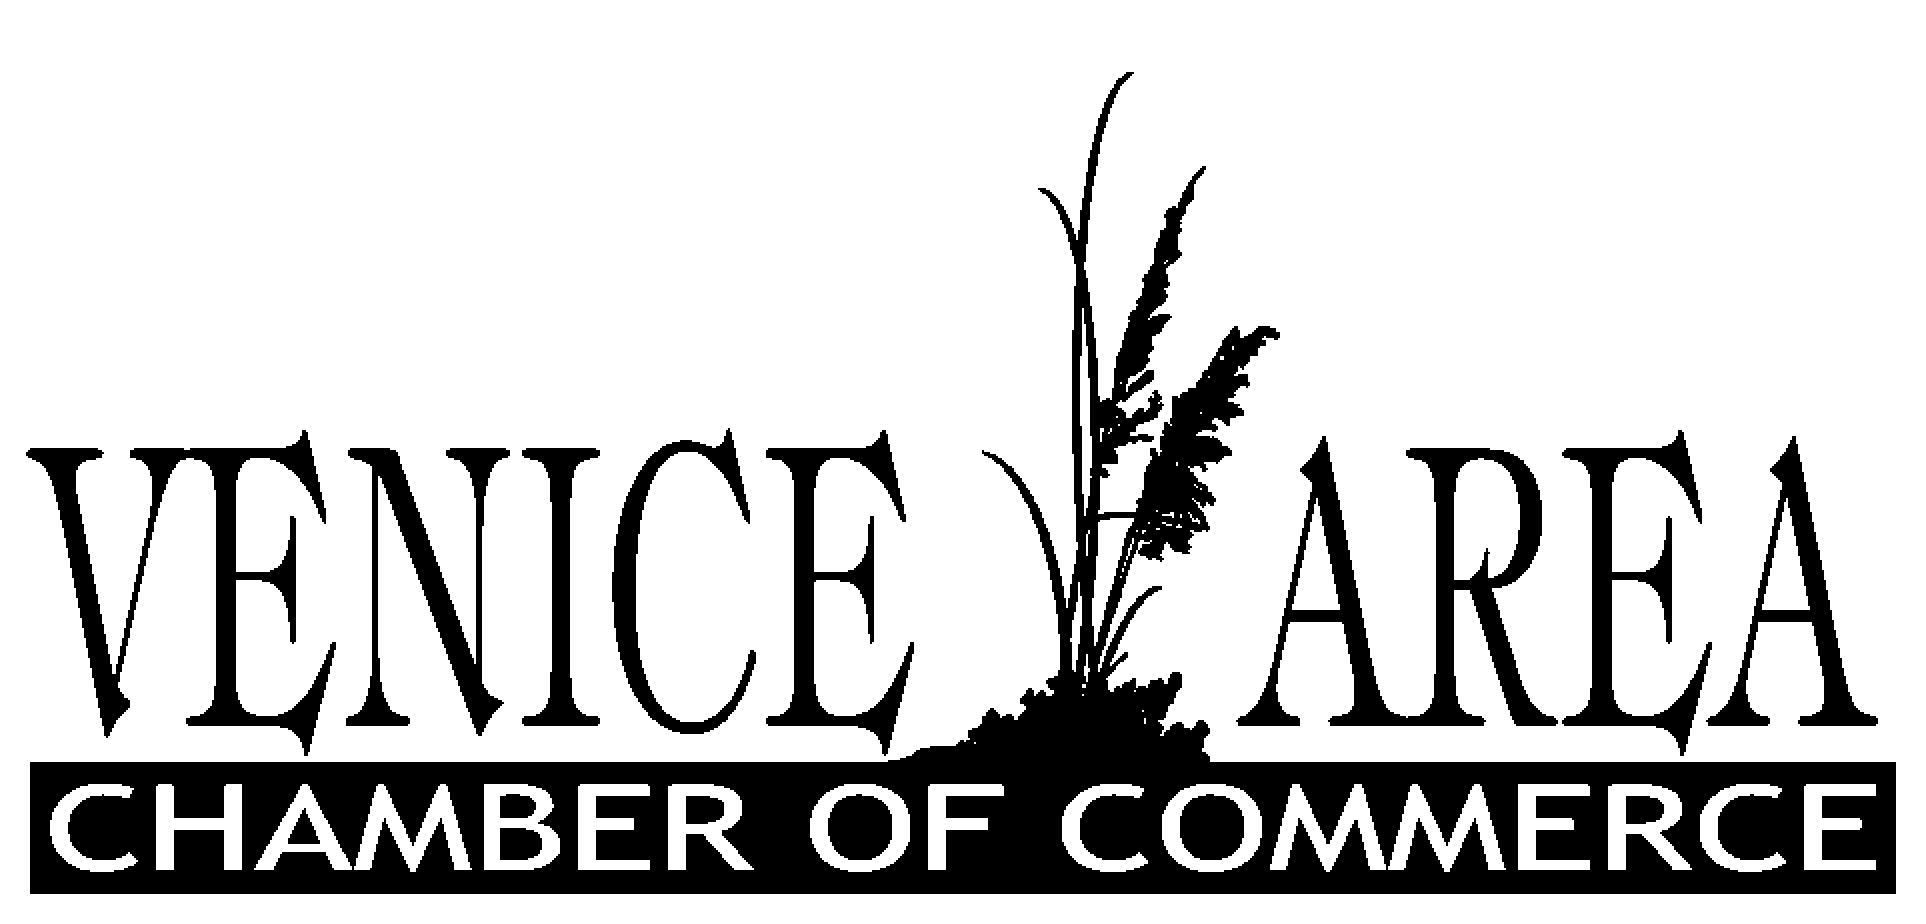 Member of Venice Area Chamber of Commerce H2 Concierge Marketing LLC 1532 US41 BYP S #217 Venice FL 34293